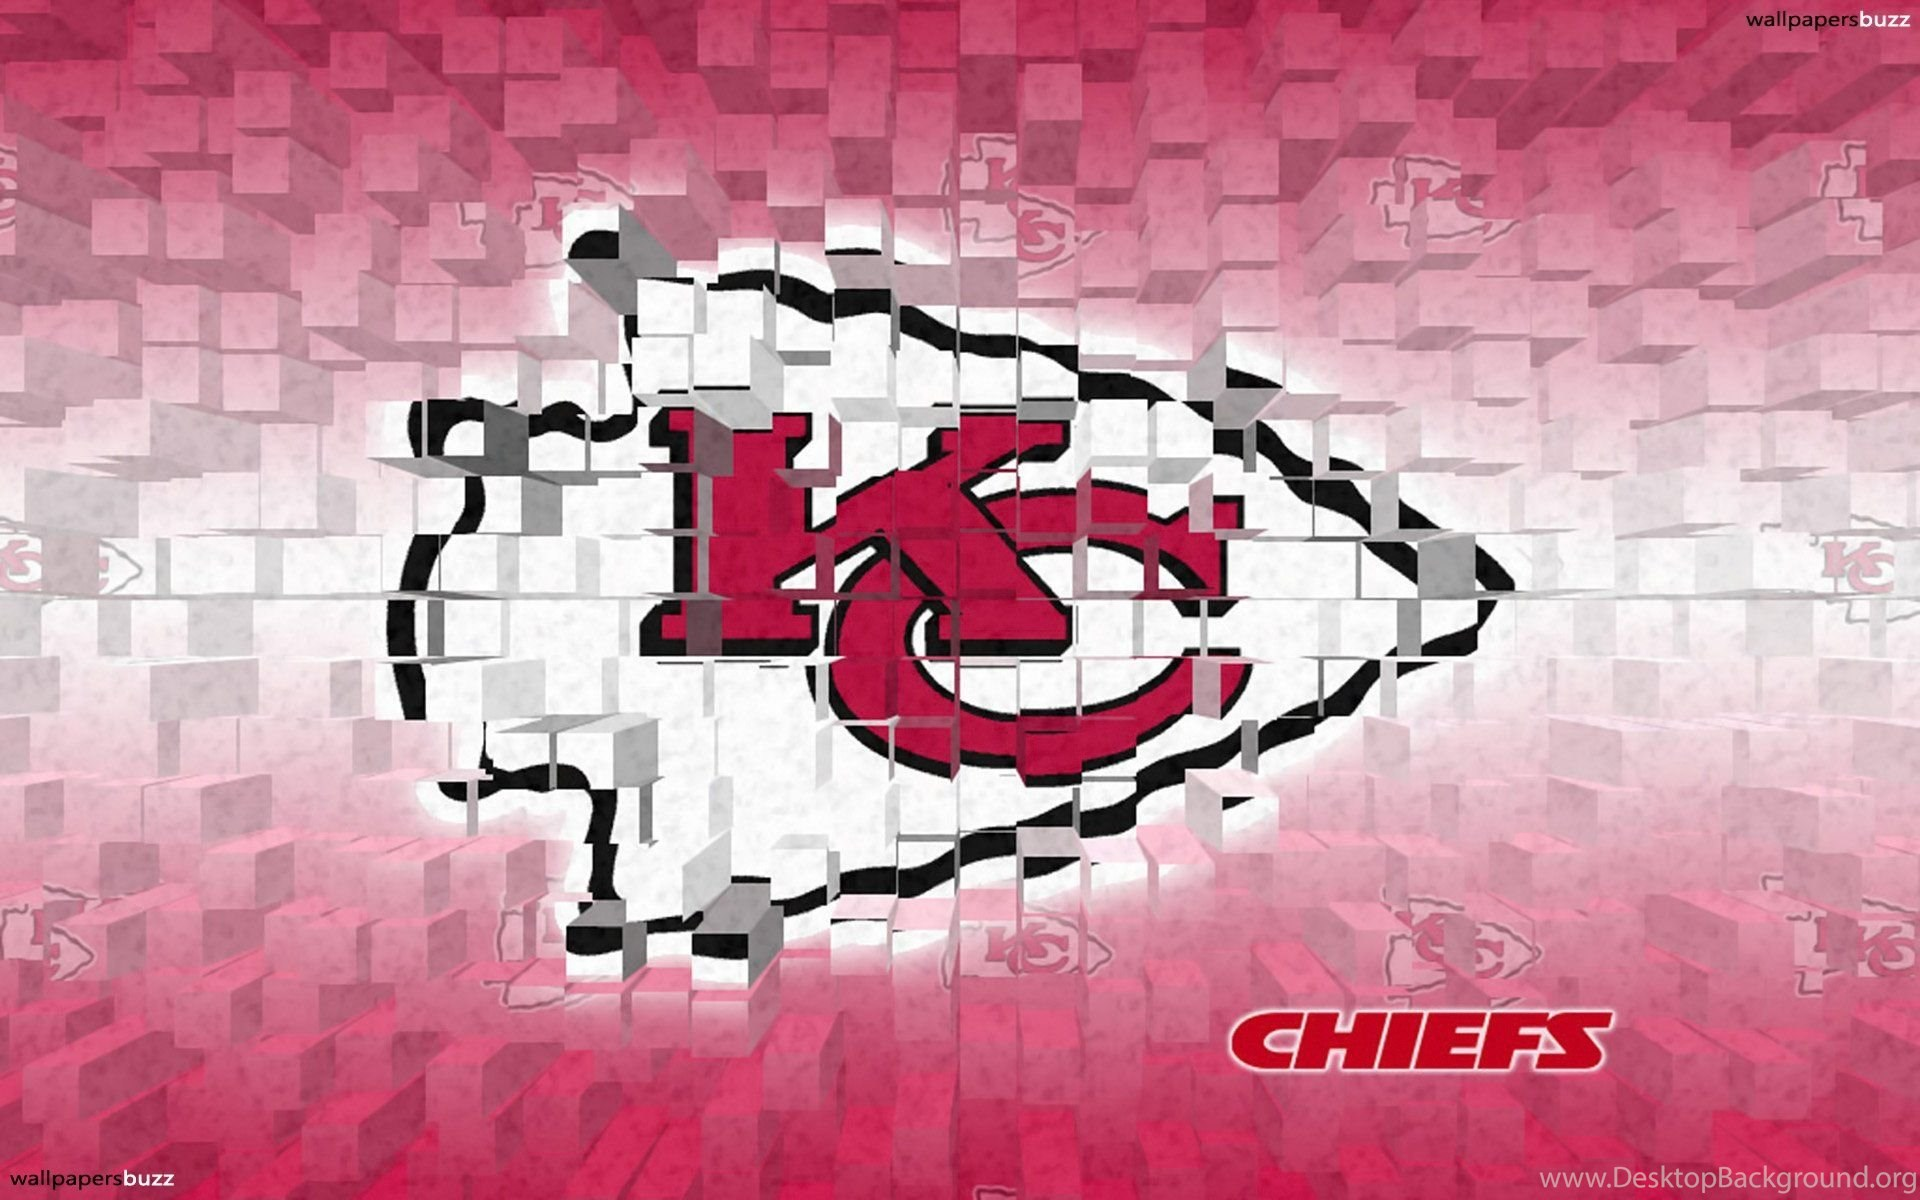 Get the Latest Kansas City Chiefs News Updates and Rumors Dont Miss Anything With Complete Chiefs Coverage on KC Kingdom